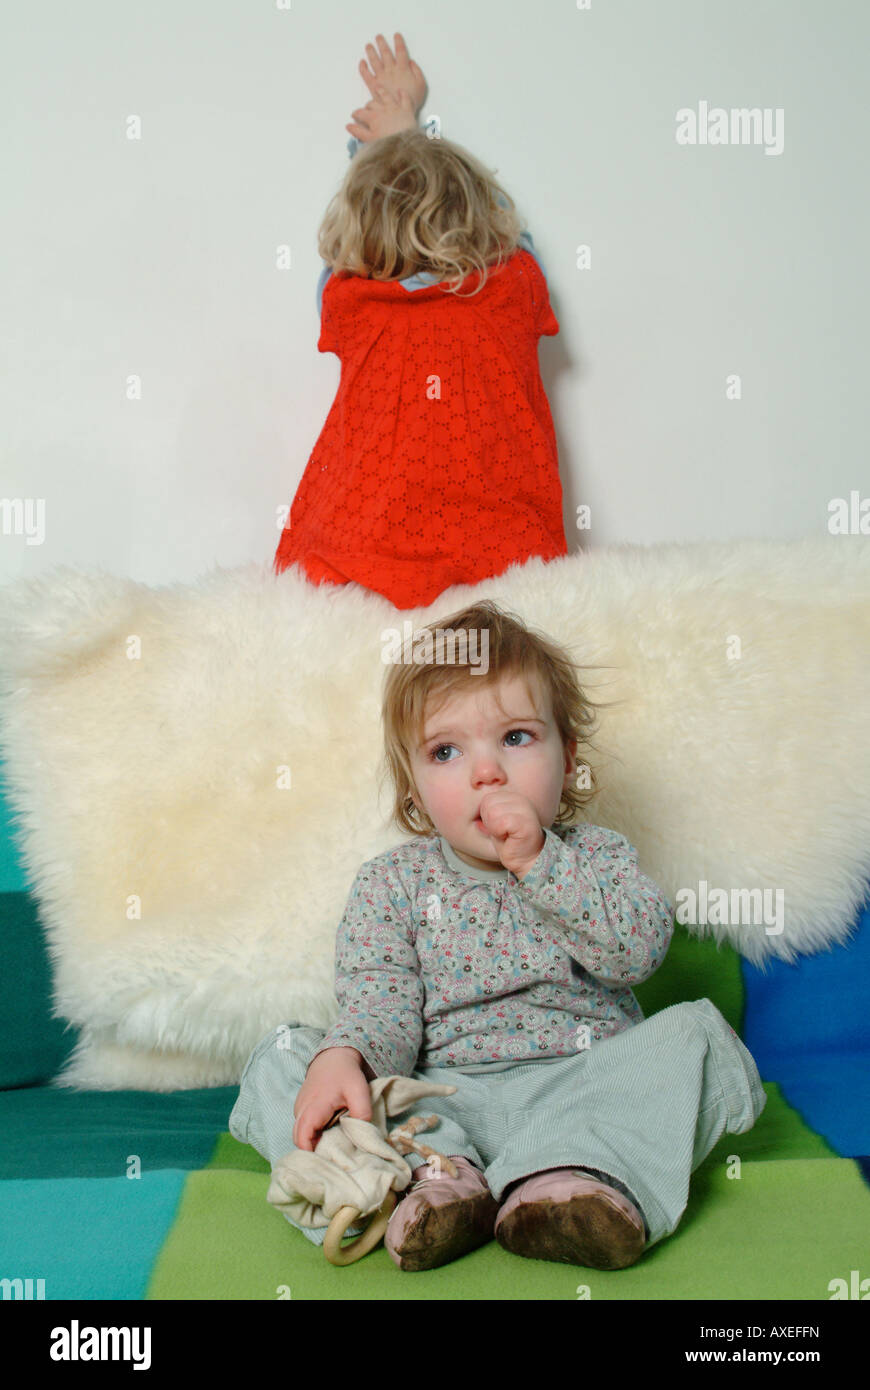 Two little girls sitting on the sofa, one sucking her thumb, the other sulking. - Stock Image